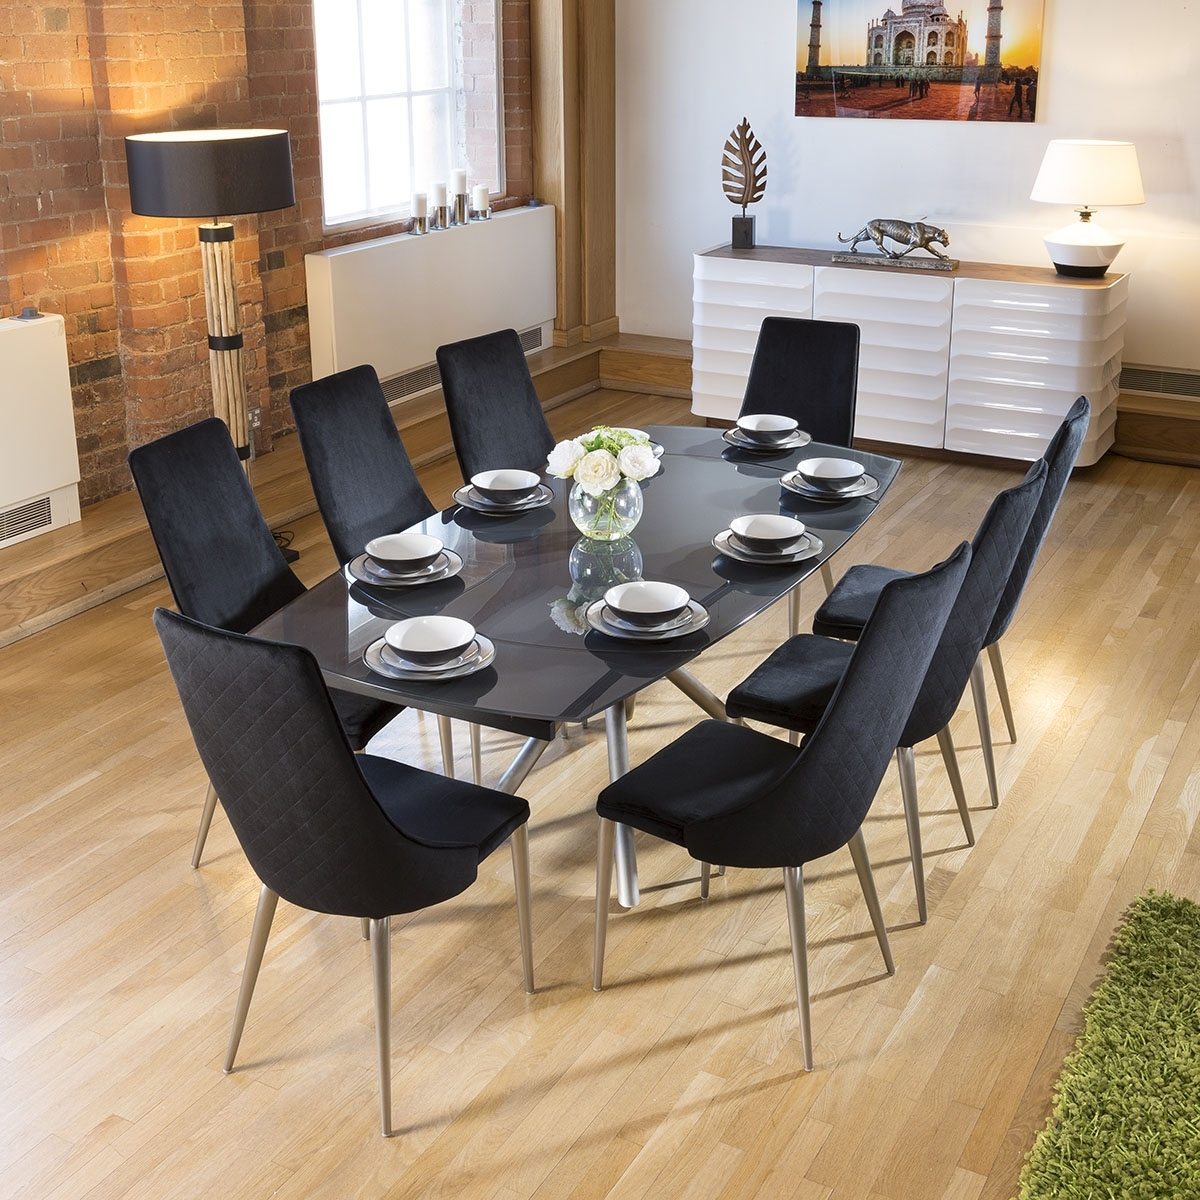 Widely Used Modern Grey Glass Extending Dining Table Set + 8 Black Velvet Chairs For Extending Dining Table Sets (View 25 of 25)